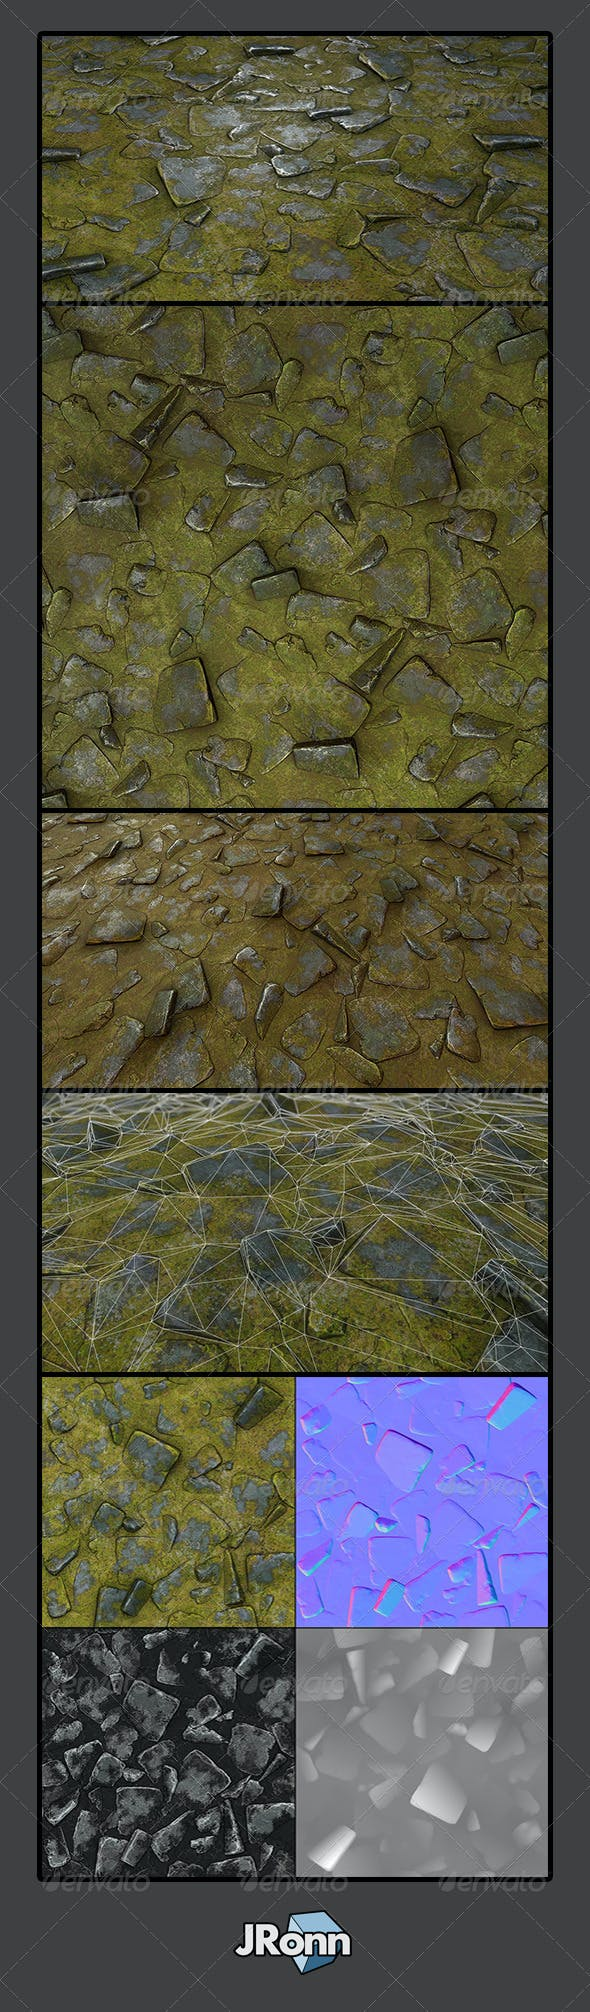 Grassy Stone Road Tile 02 - 3DOcean Item for Sale